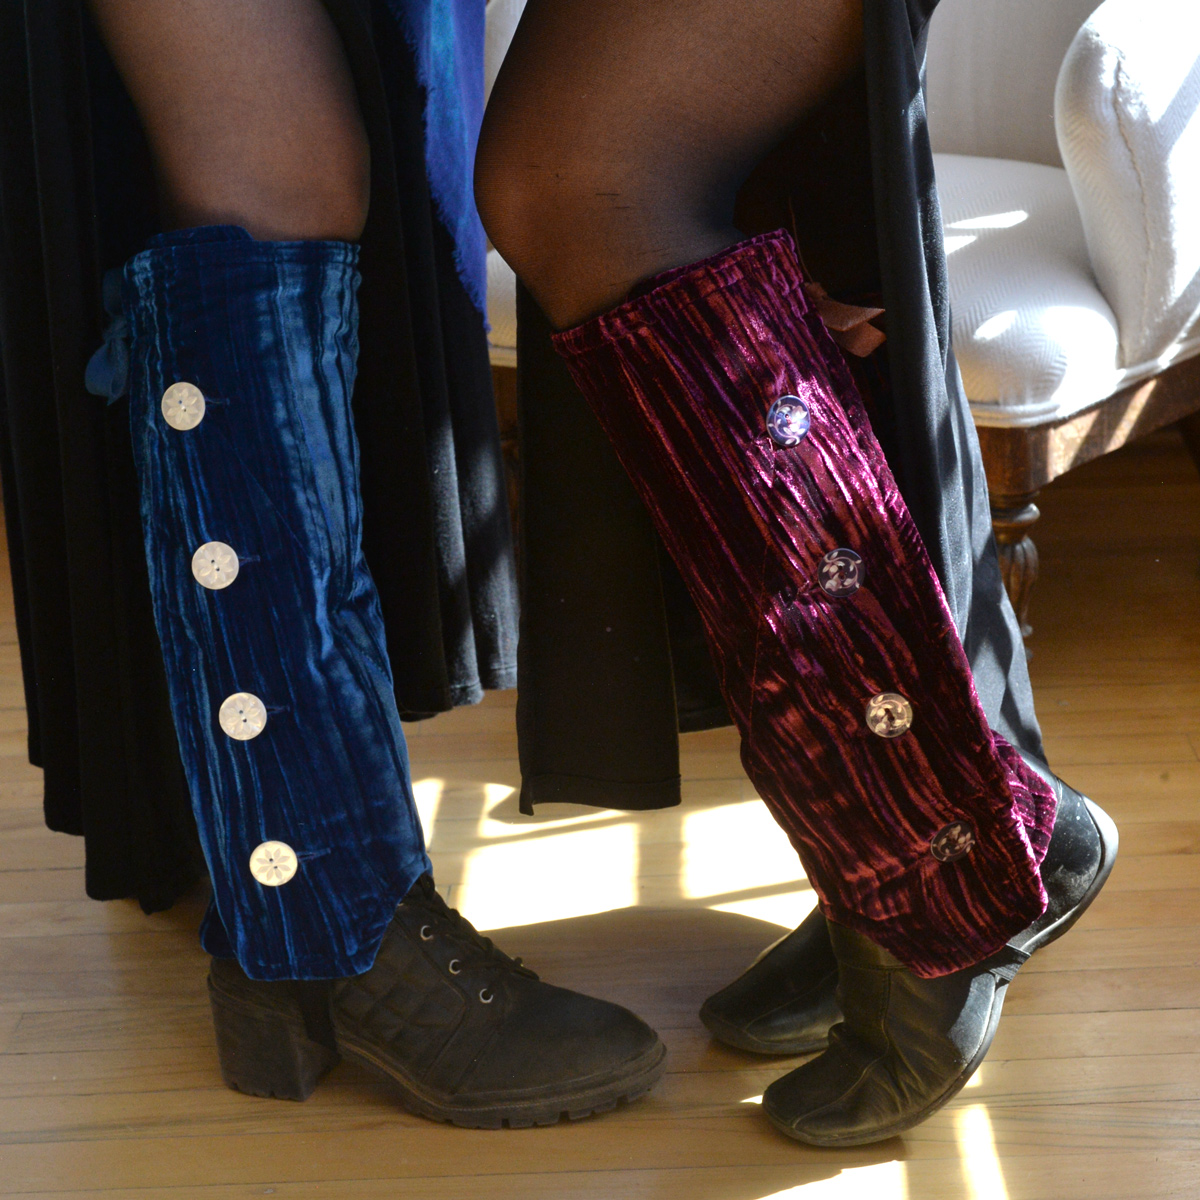 SallyGators® Leg Warmers in Chianti Velvet by Gail Russell Art & Apparel, Taos, New Mexico